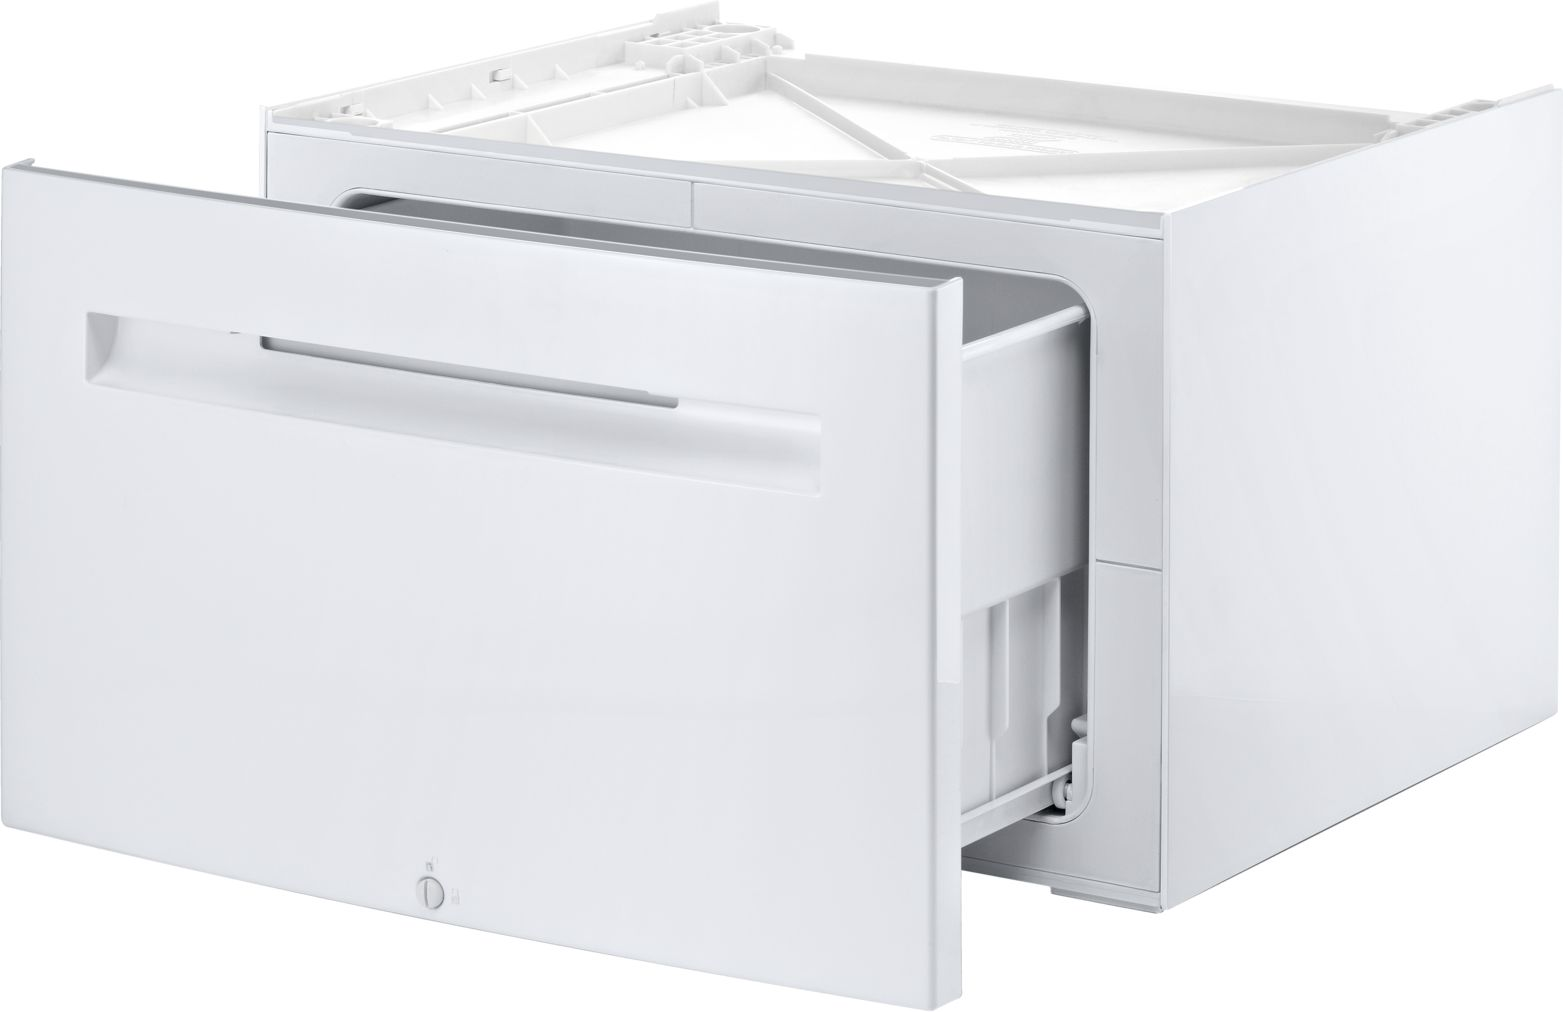 Model: WMZ20500 | WMZ20500Pedestal with Pull-Out Drawer24